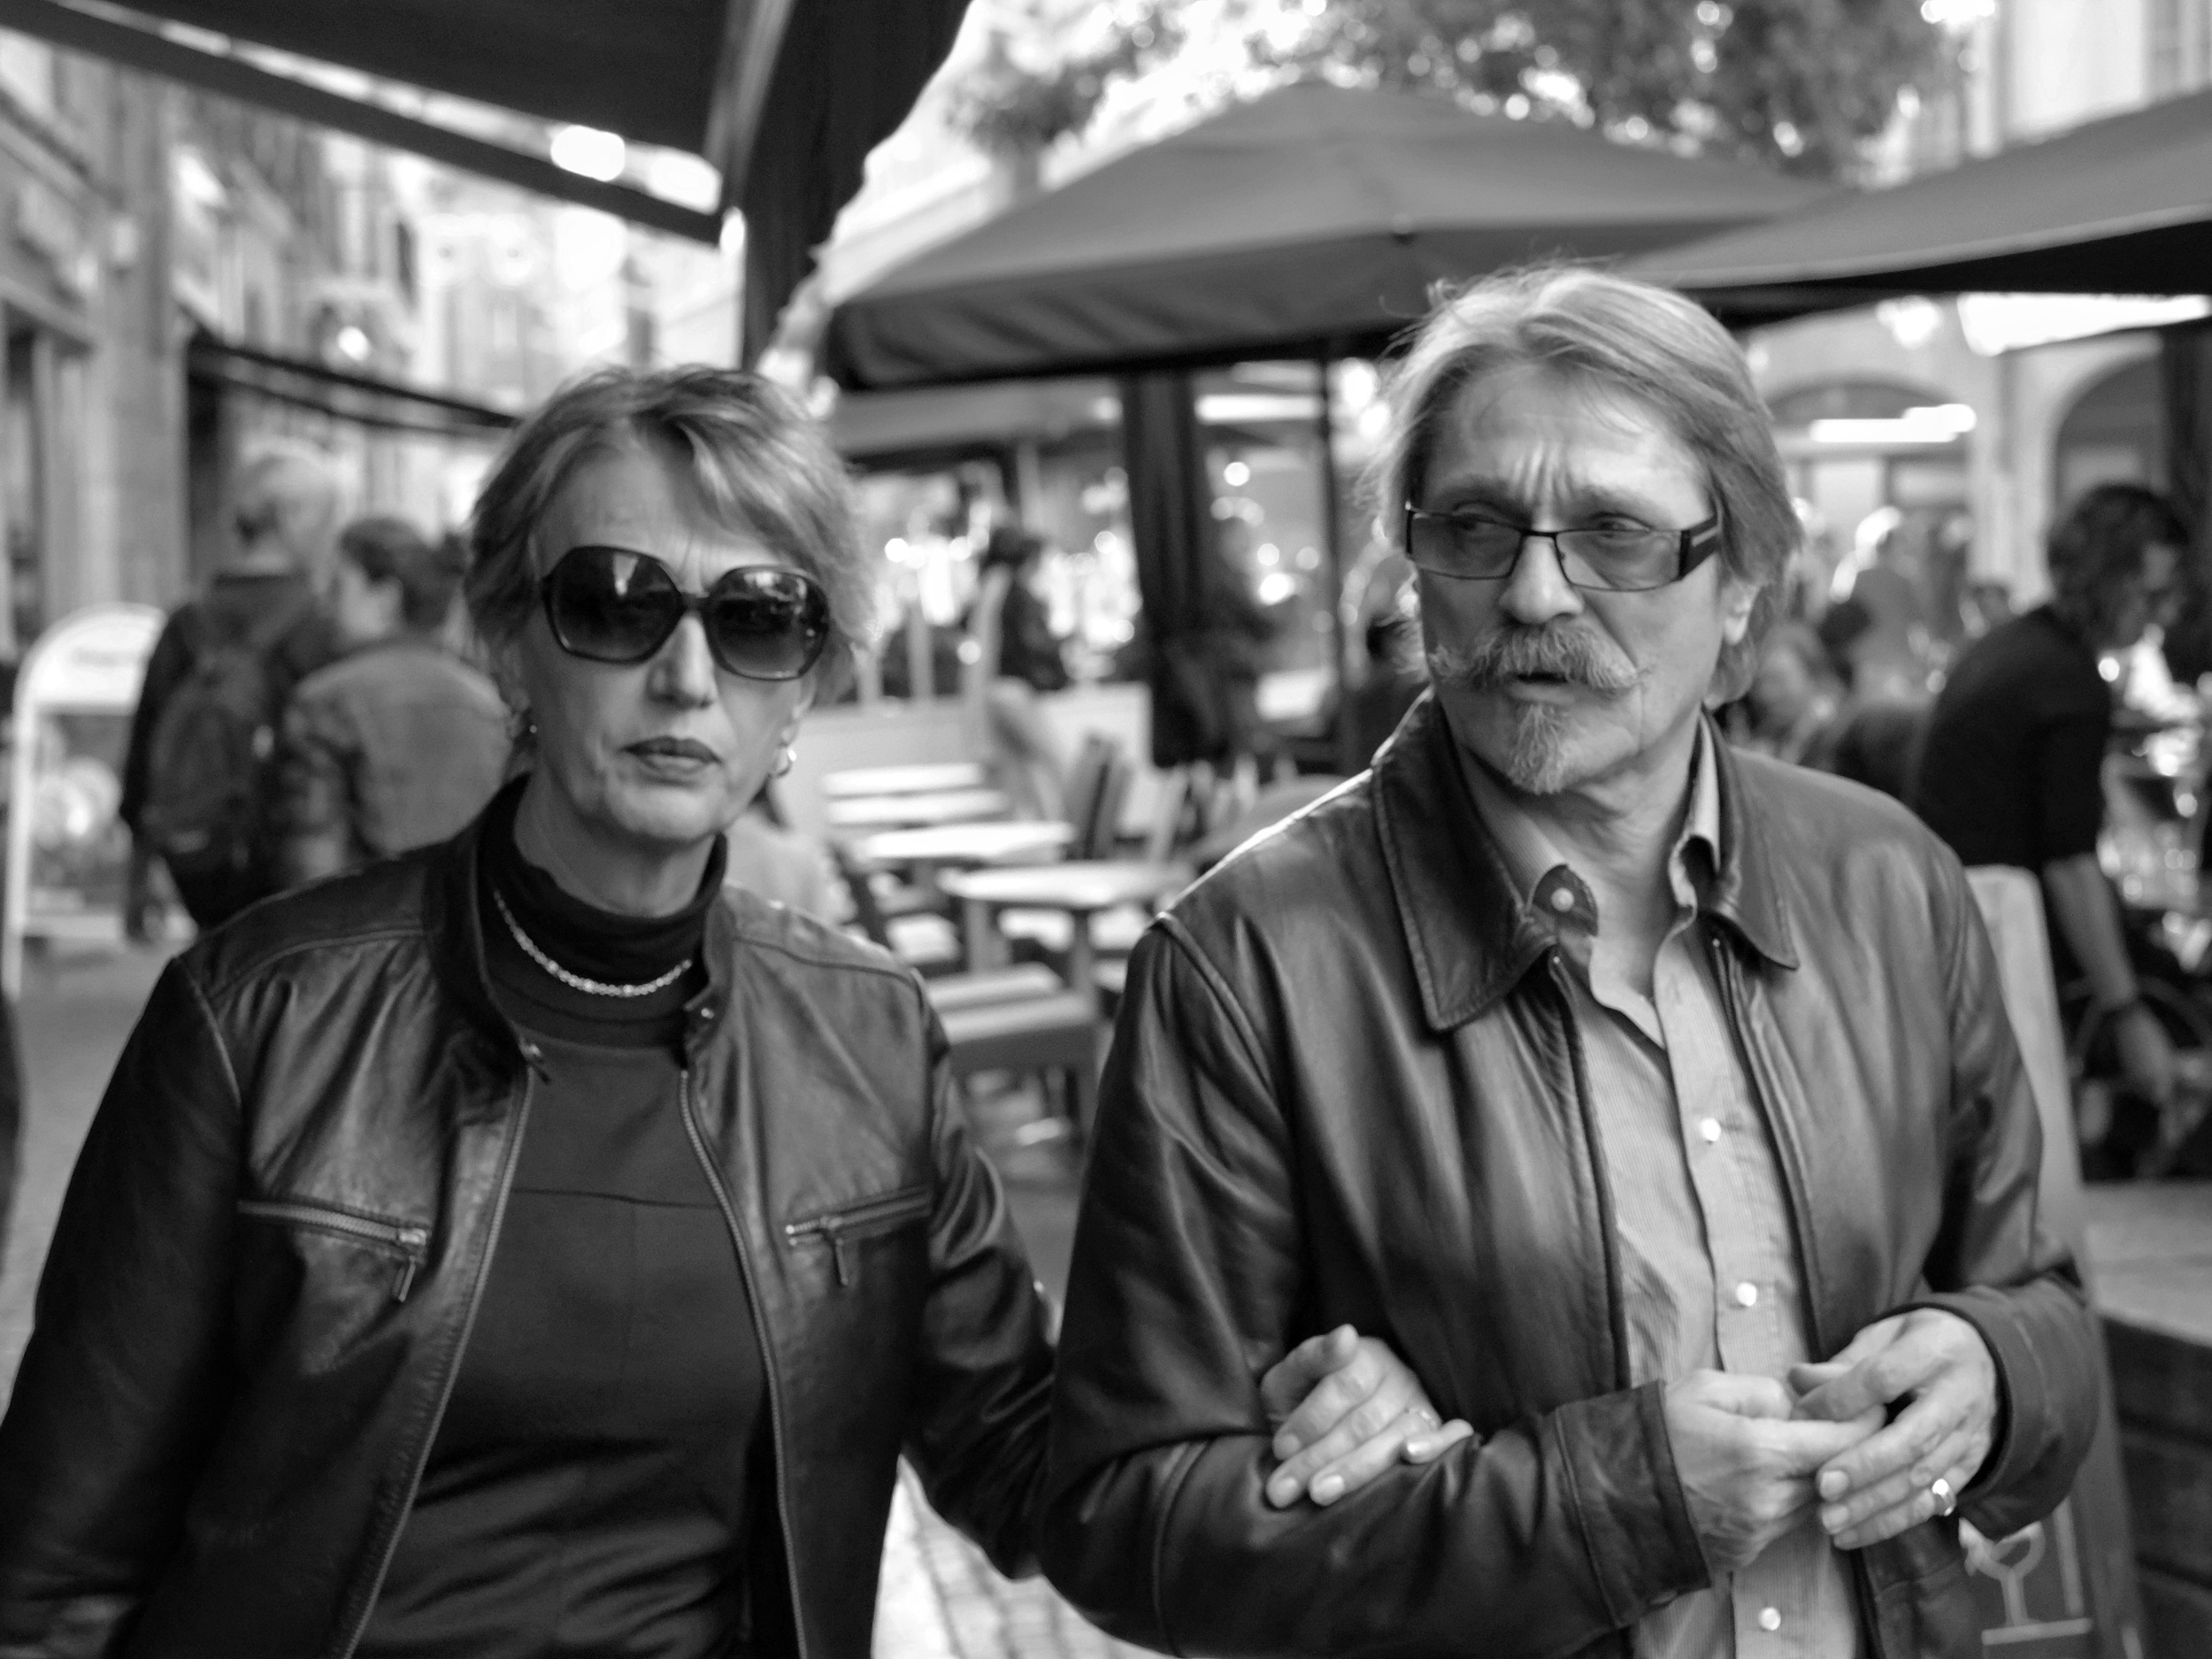 Couple with glasses walking in Nantes - Fuji X-Pro1